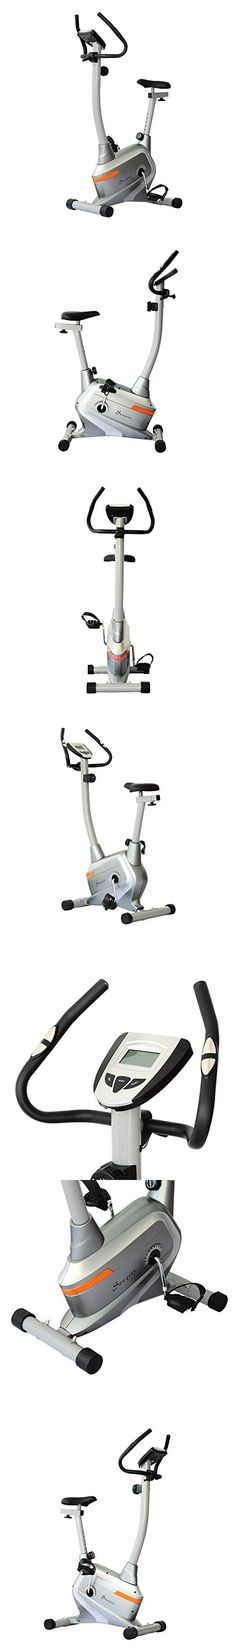 Soozier 2 in 1 Exercise Cross Trainer Bike w/LCD Monitor - Silver